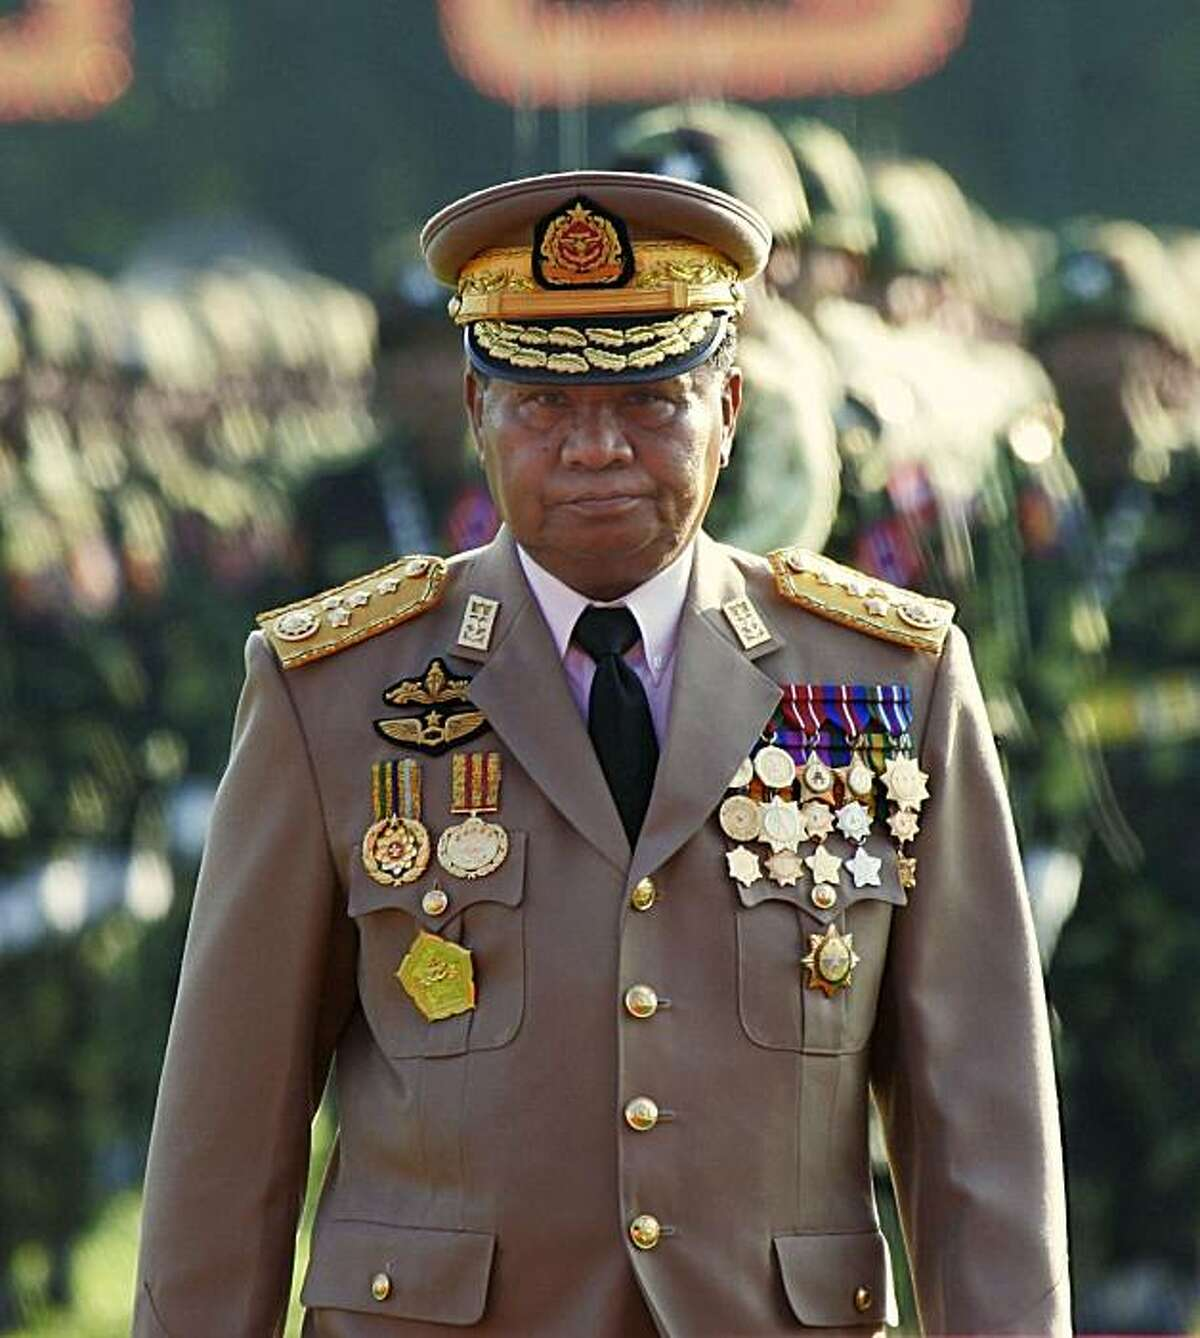 Myanmar junta leader Sen. Gen. Than Shwe attends Armed Forces Day ceremonies in Yangon, in this March 27, 2005, file photo. x